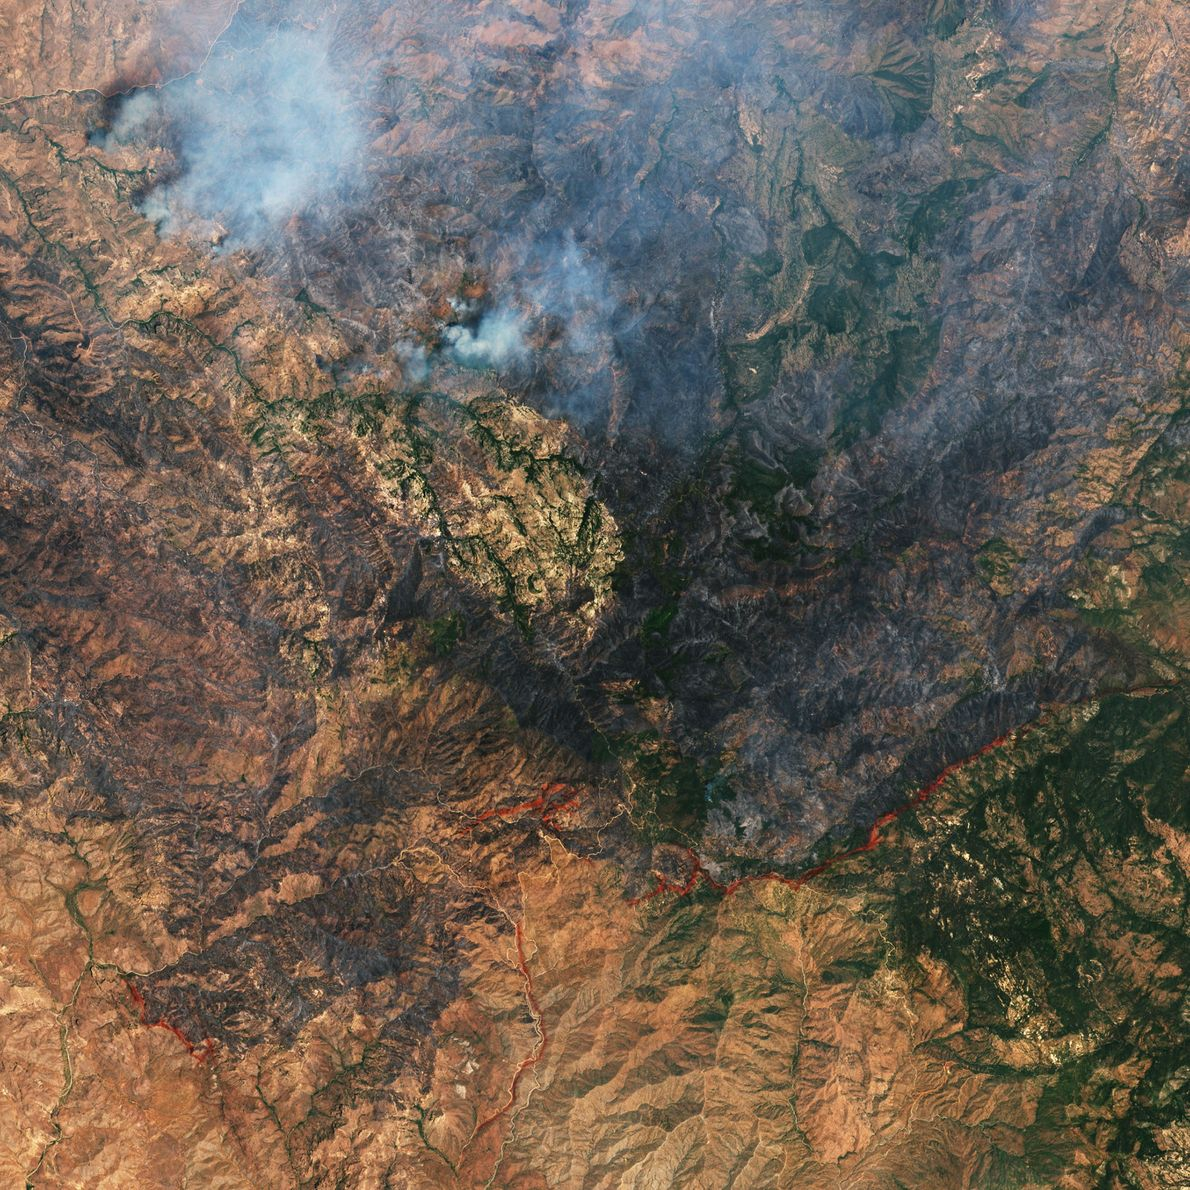 Since June 8, a huge wildfire has destroyed swaths of vegetation east of Phoenix, Arizona. Firefighters ...